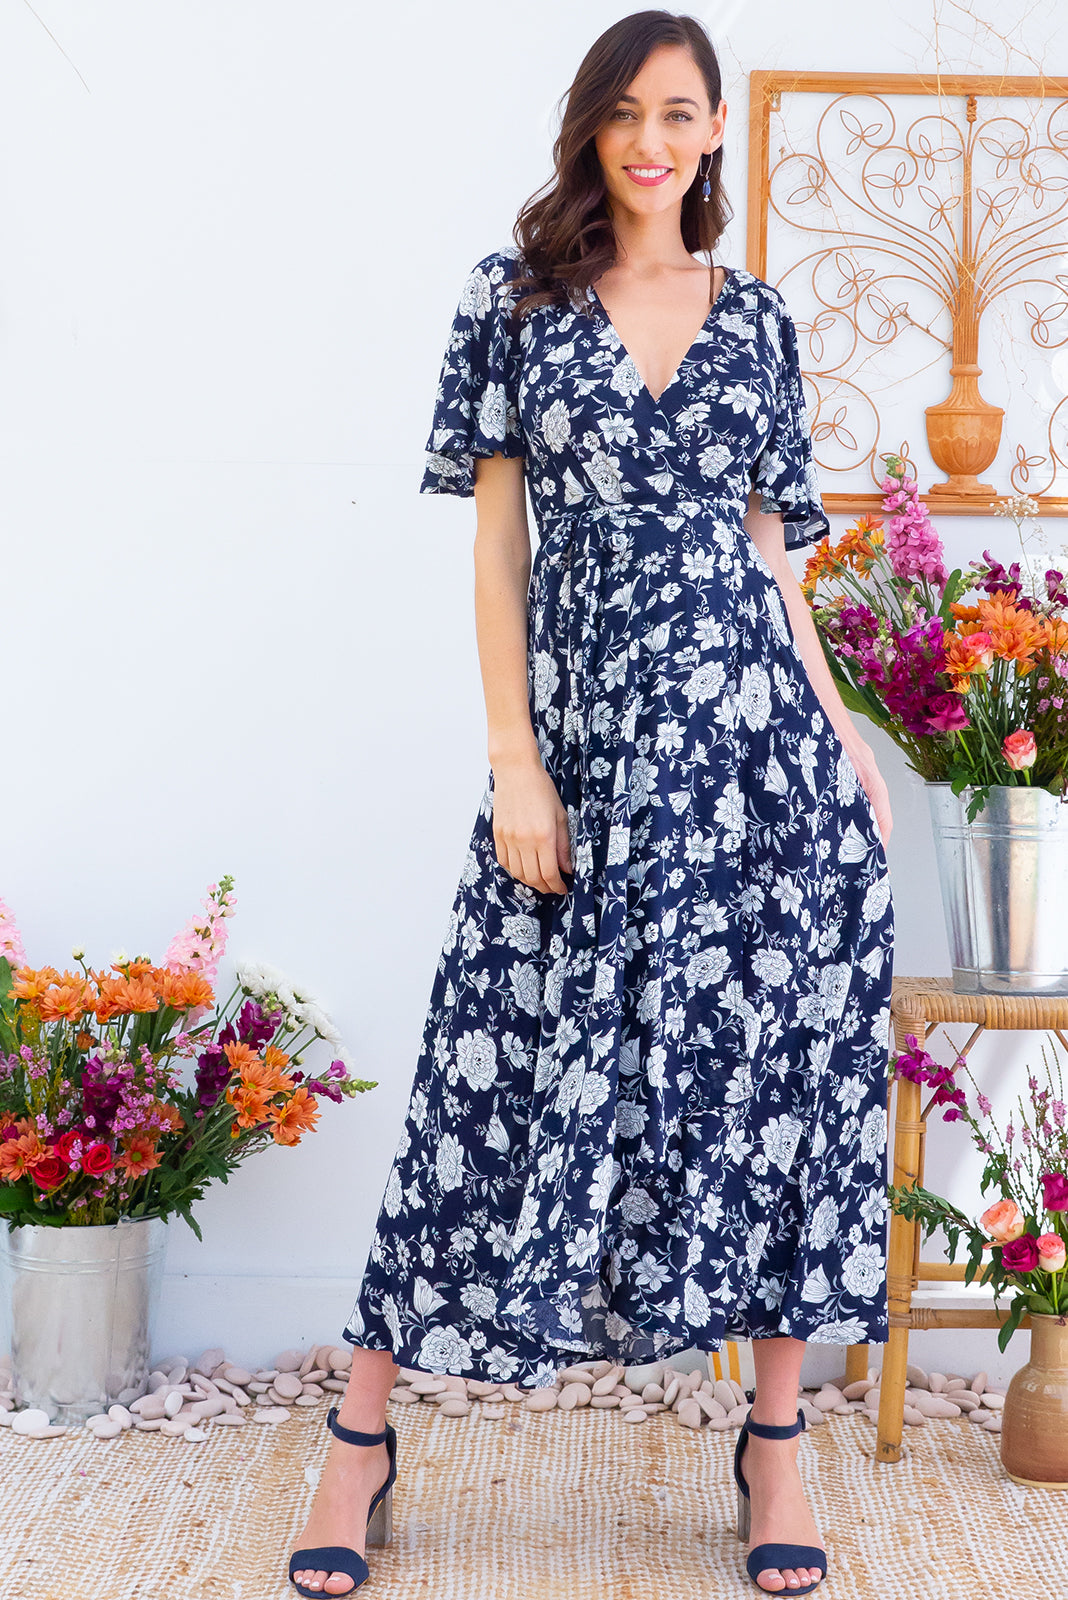 Petal Midnight Roses Maxi Wrap Dress features a strong navy base with a white floral bohemian print on a soft woven rayon it features petal sleeves, a wrap around waist and a waterfall hemline